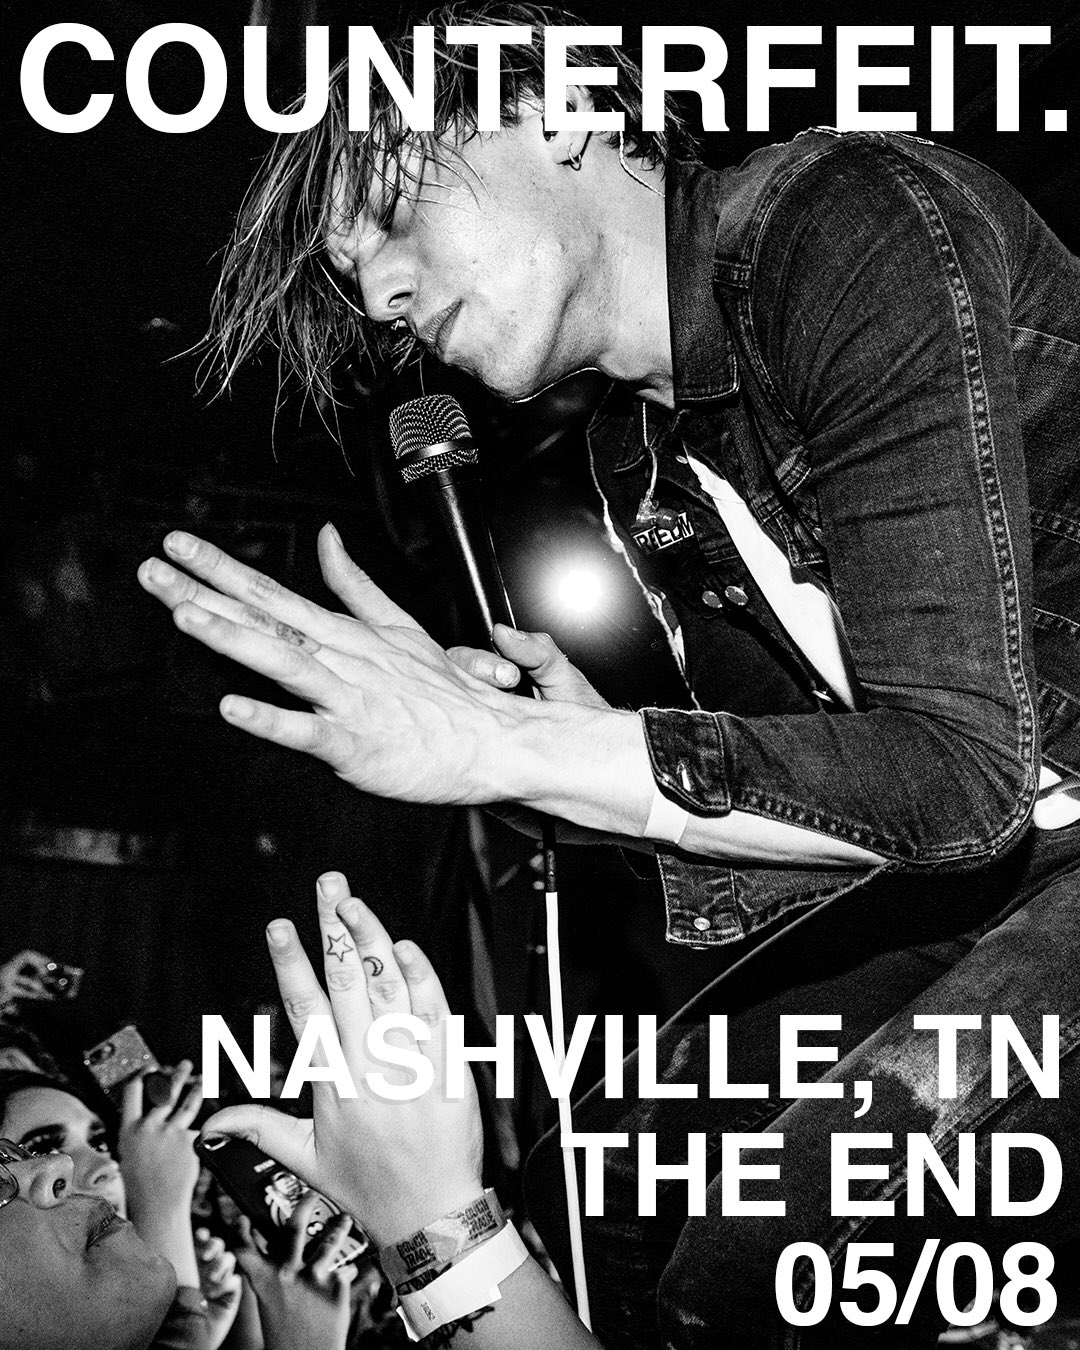 En route to Nashville for tomorrow nights show. https://t.co/e0hl3zOFHo @counterfeitrock https://t.co/UfrYw9CtO1